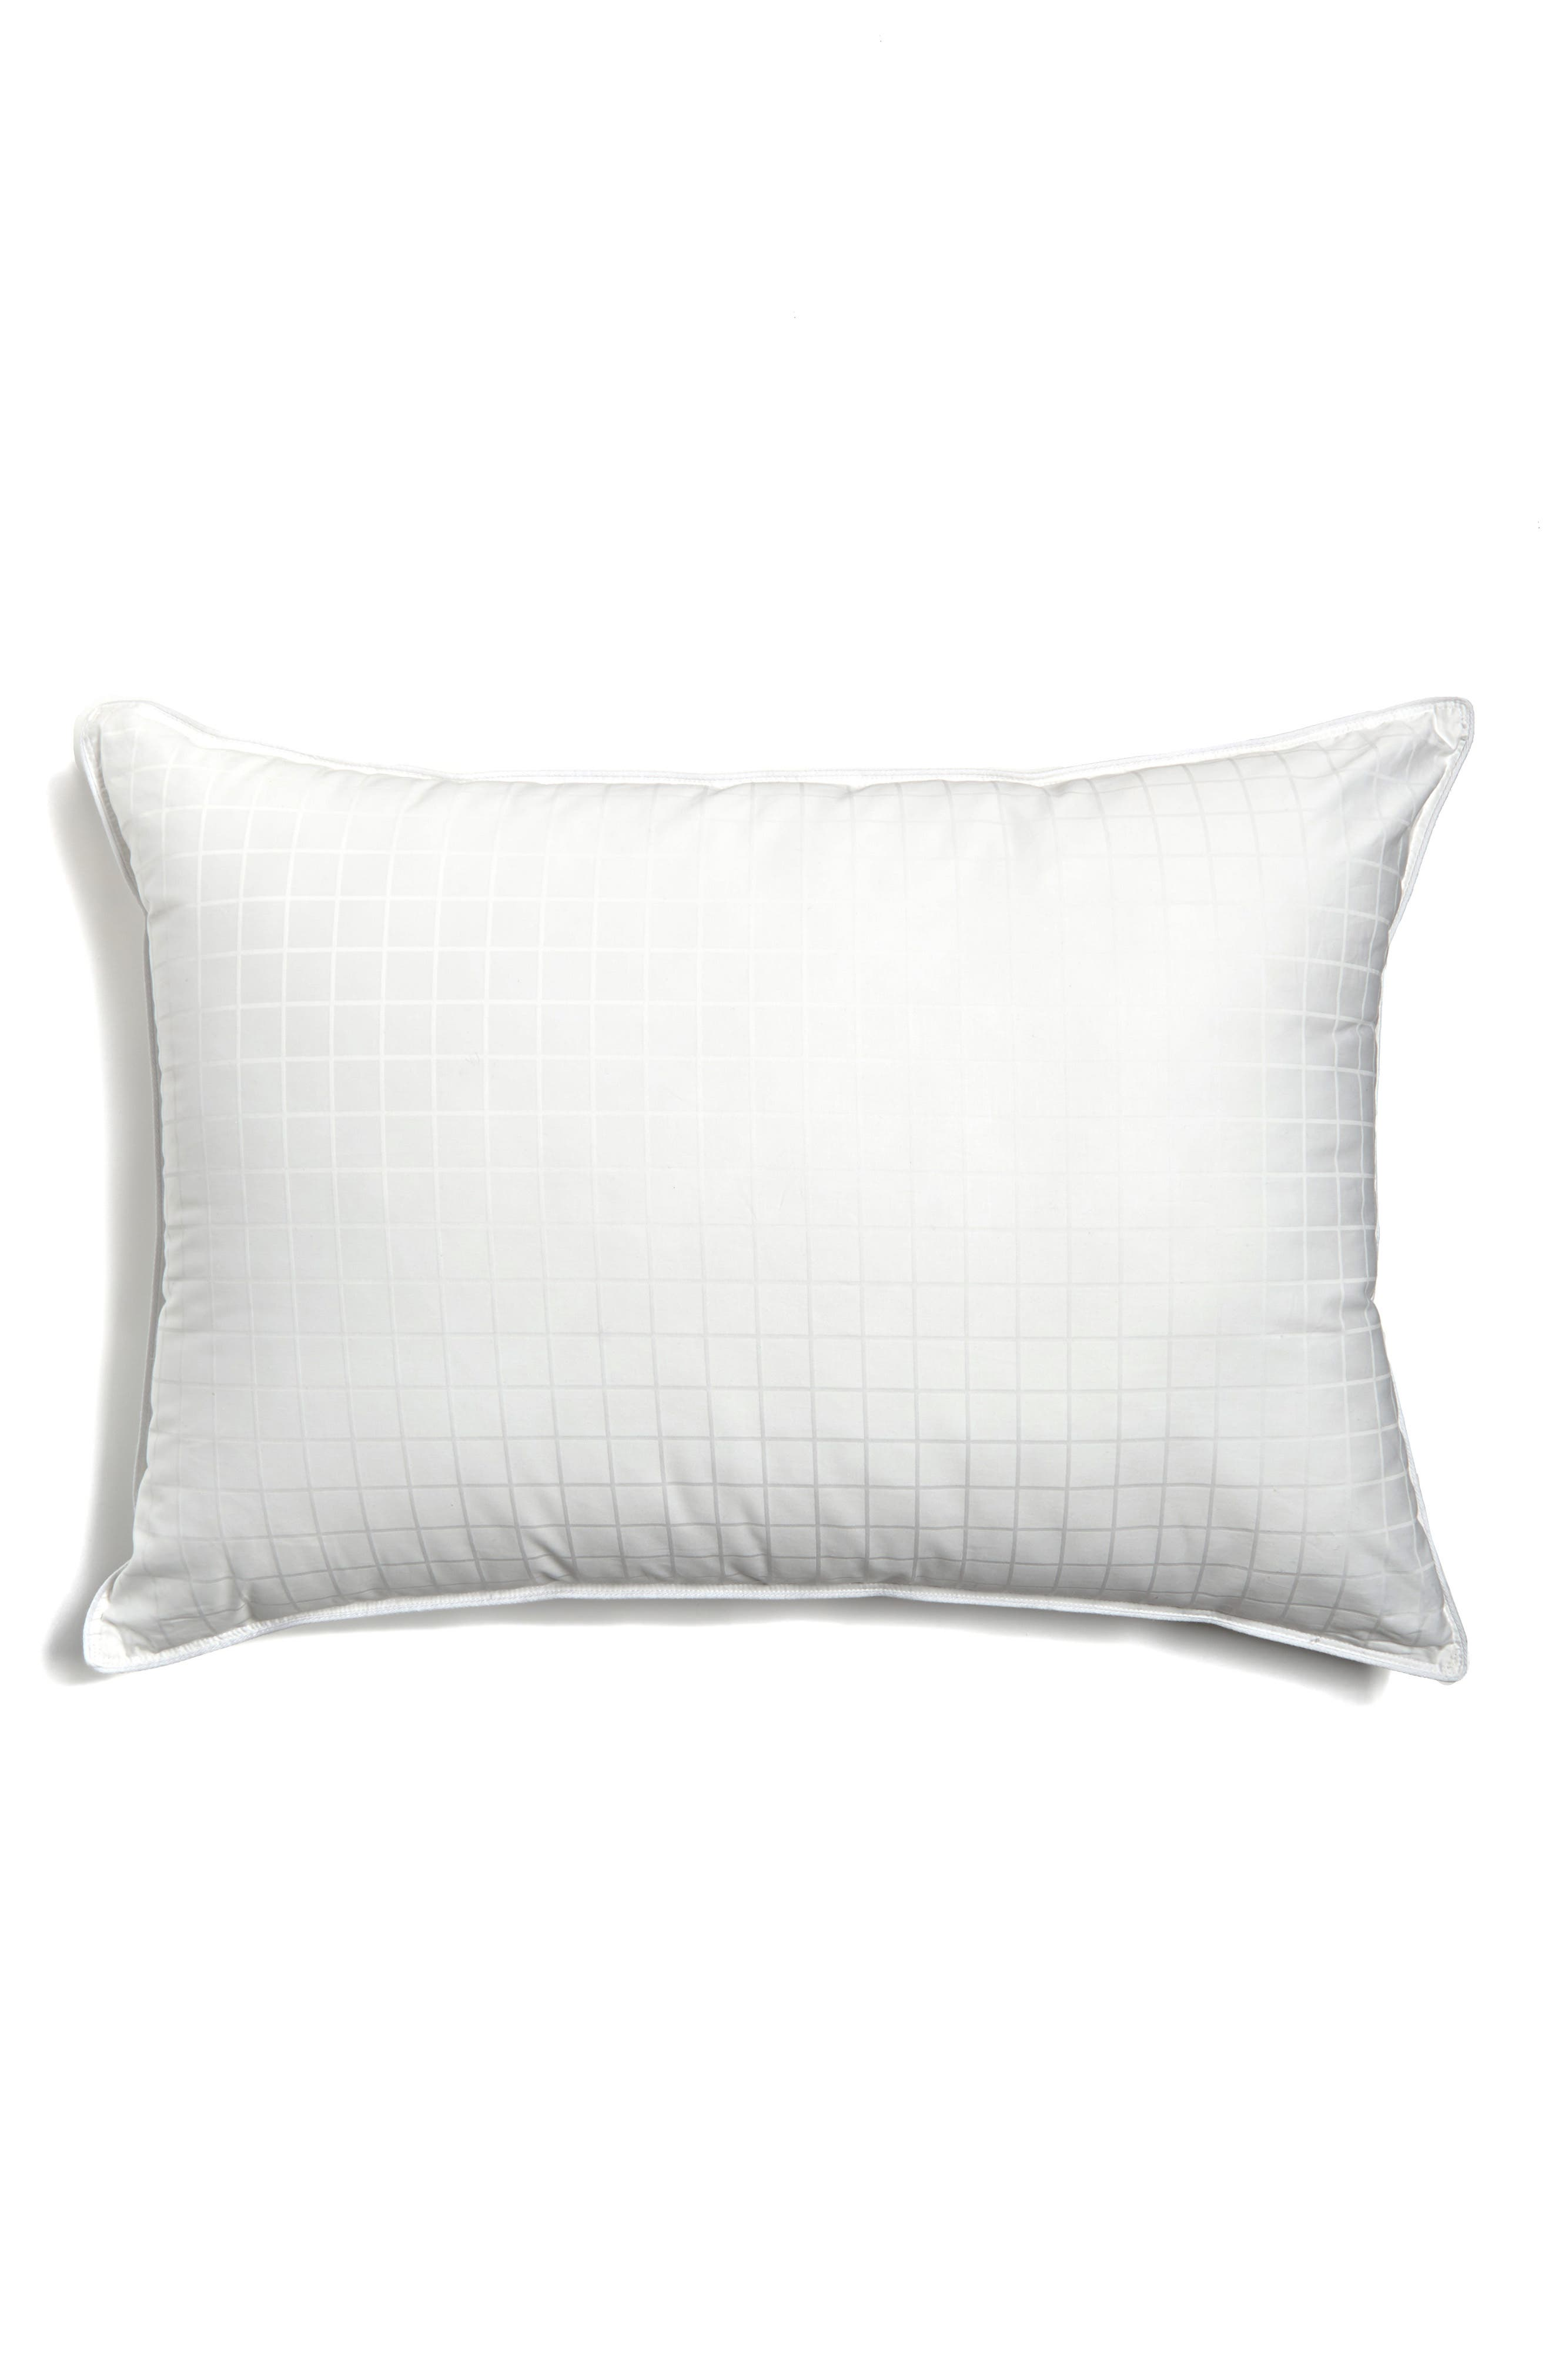 Luxe Down & Feather Pillow,                             Alternate thumbnail 2, color,                             White